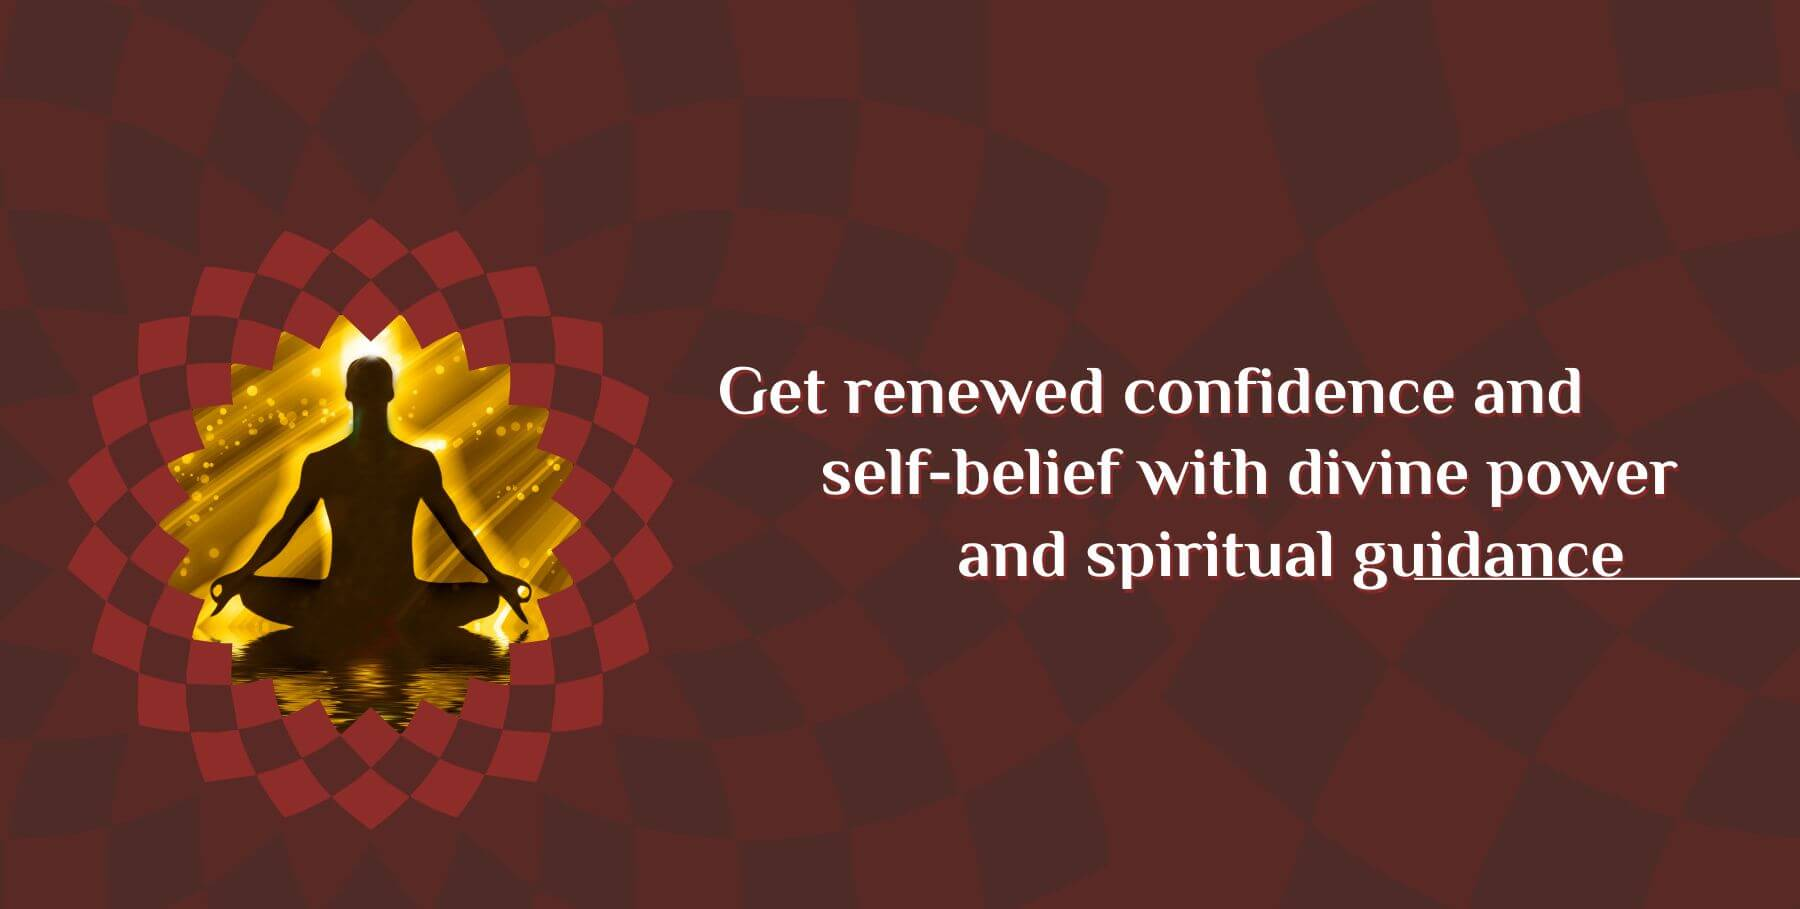 Get renewed confidence and self-belief with divine power and spiritual guidance